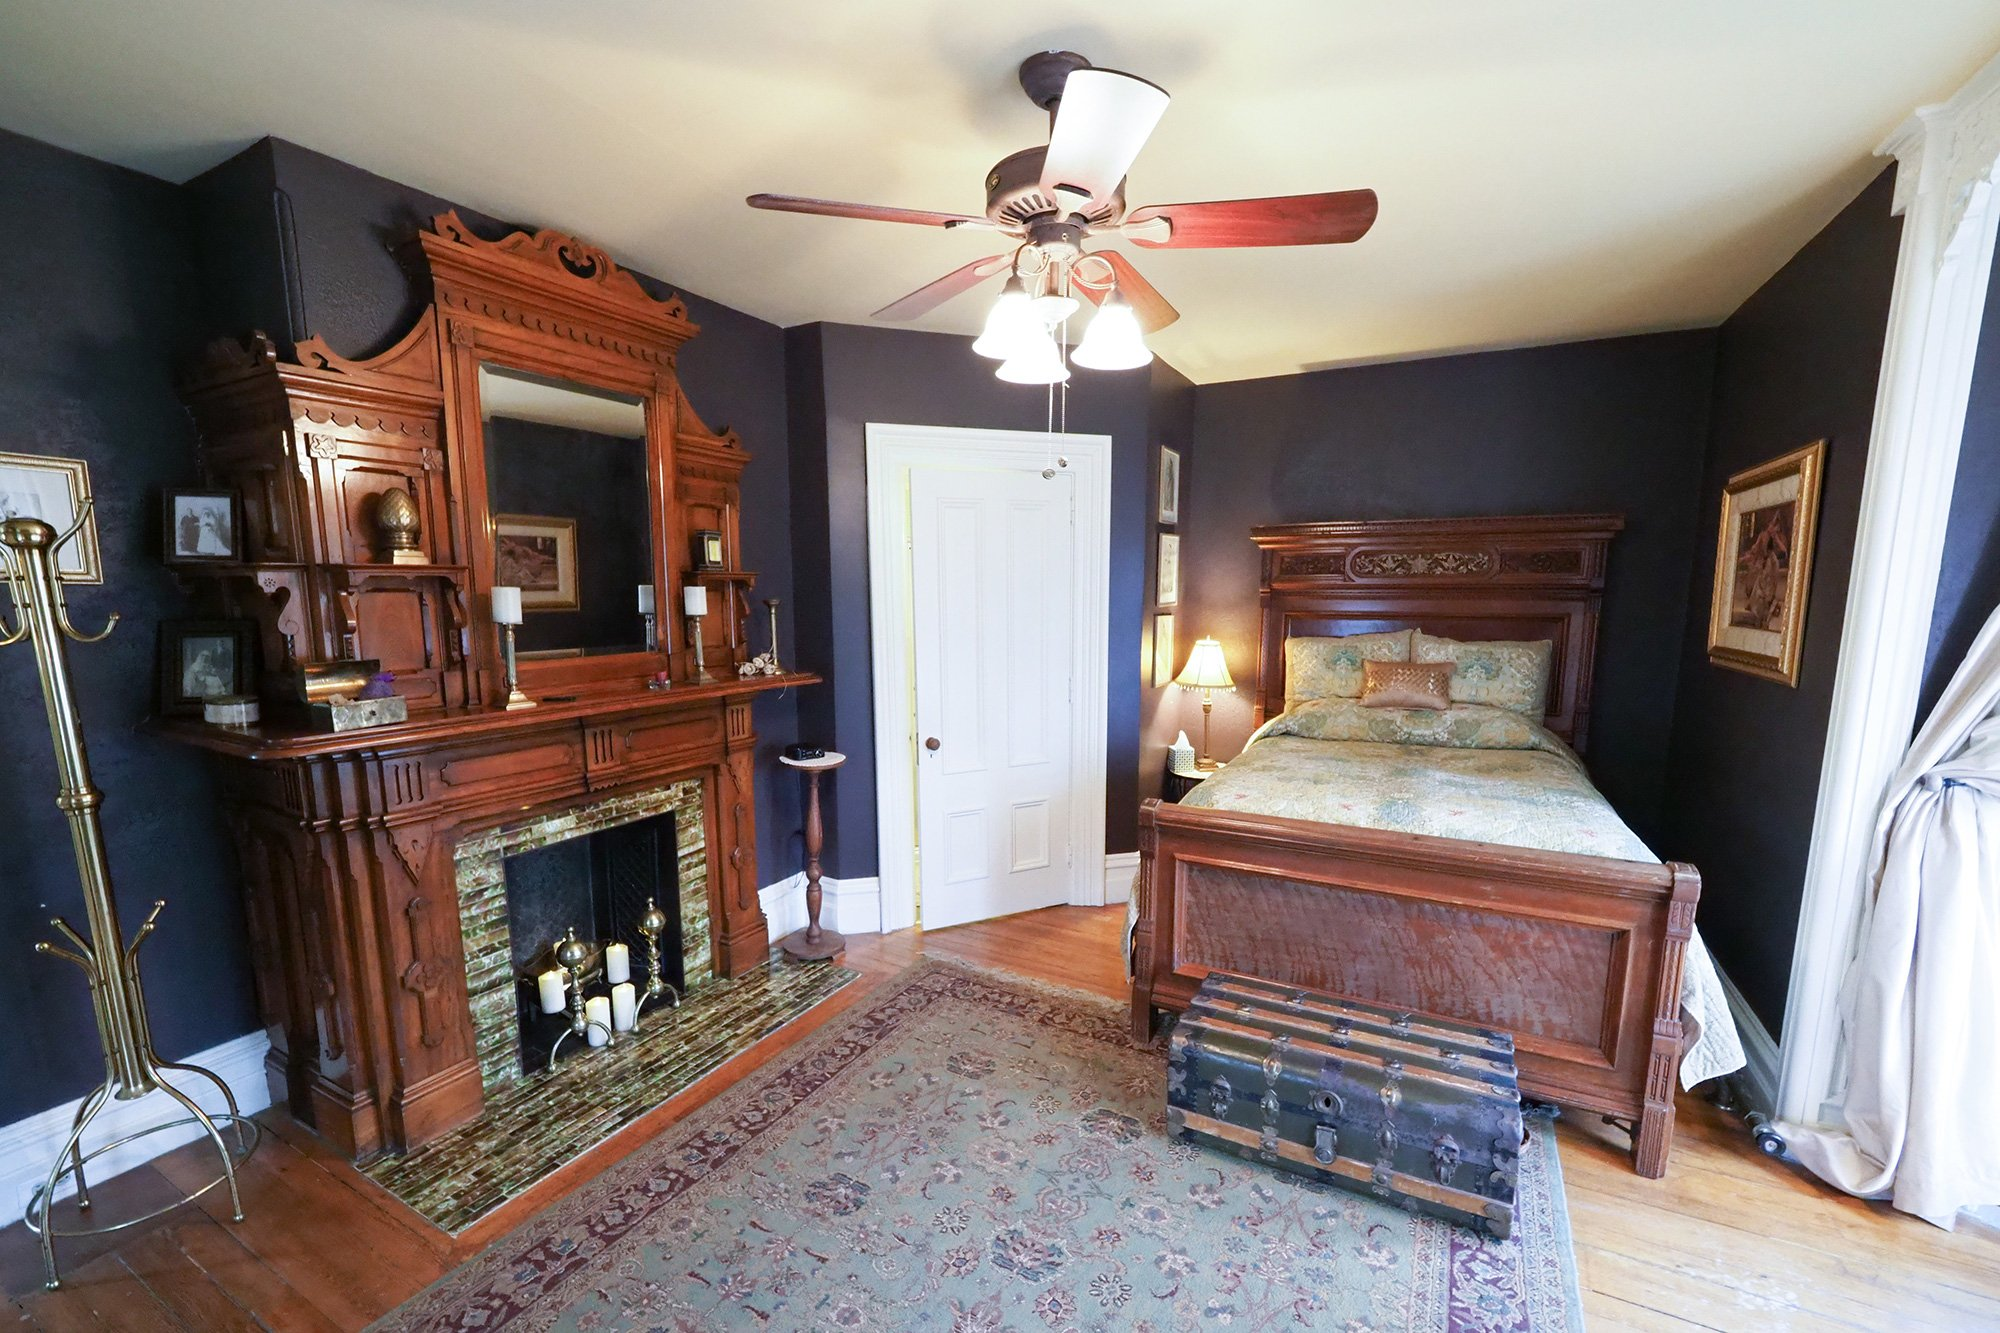 bed and fireplace